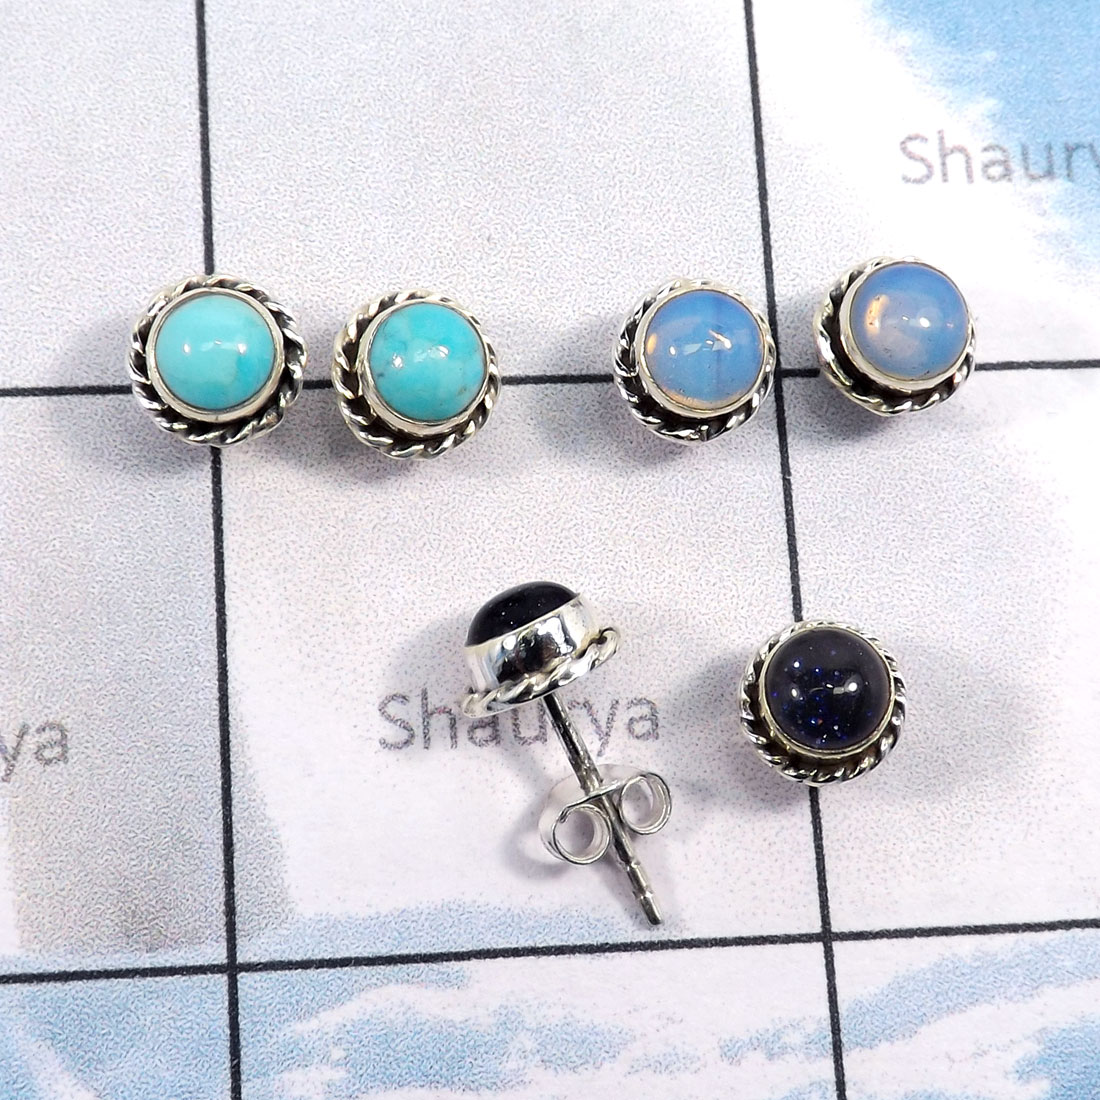 3Pairs Blue Send Stone,Turquoise,Opalite C - SSE868-Wholesale 3Pairs 5mm Round Stud Earrings With Multi Gemst